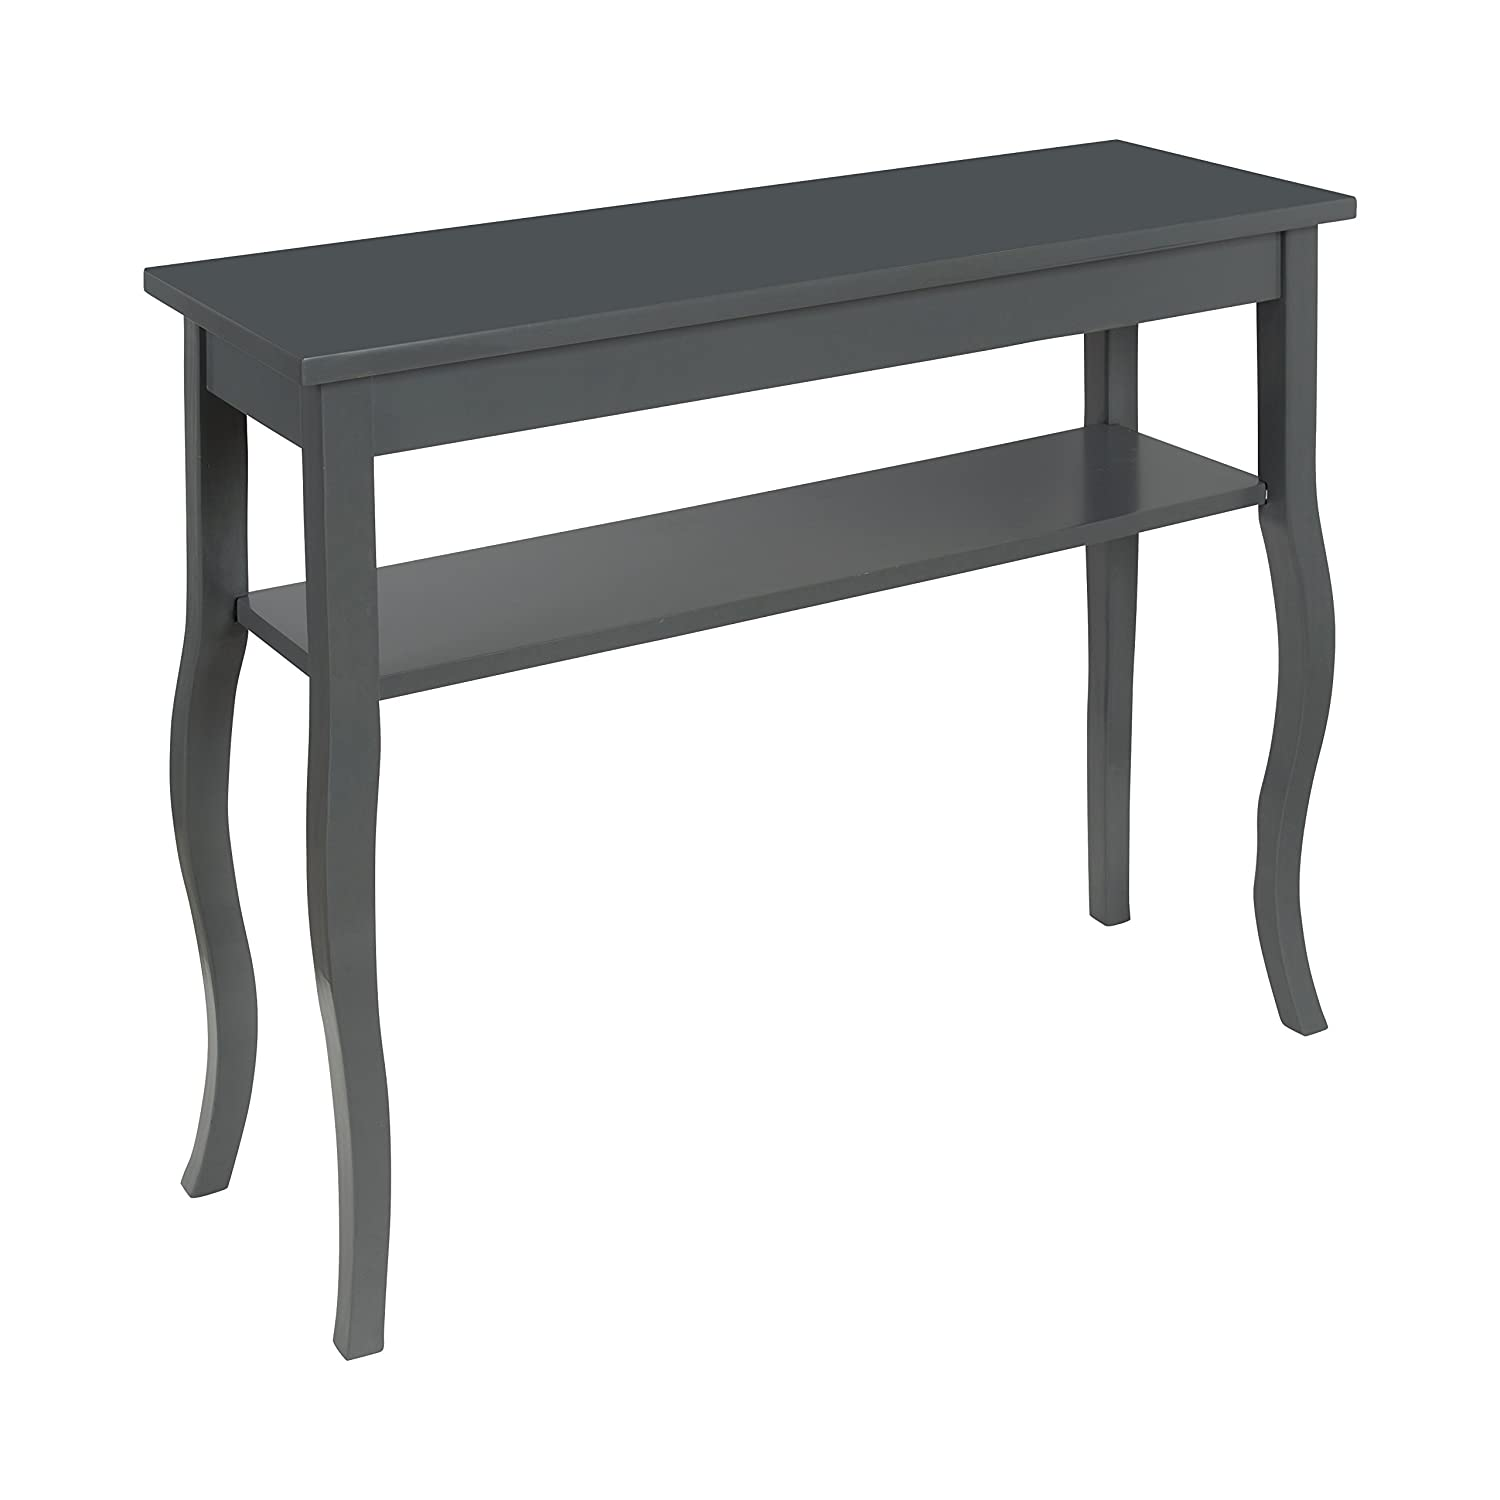 Kate and Laurel Lillian Wood Console Table with Decorative Curved Legs and Shelf, Gray